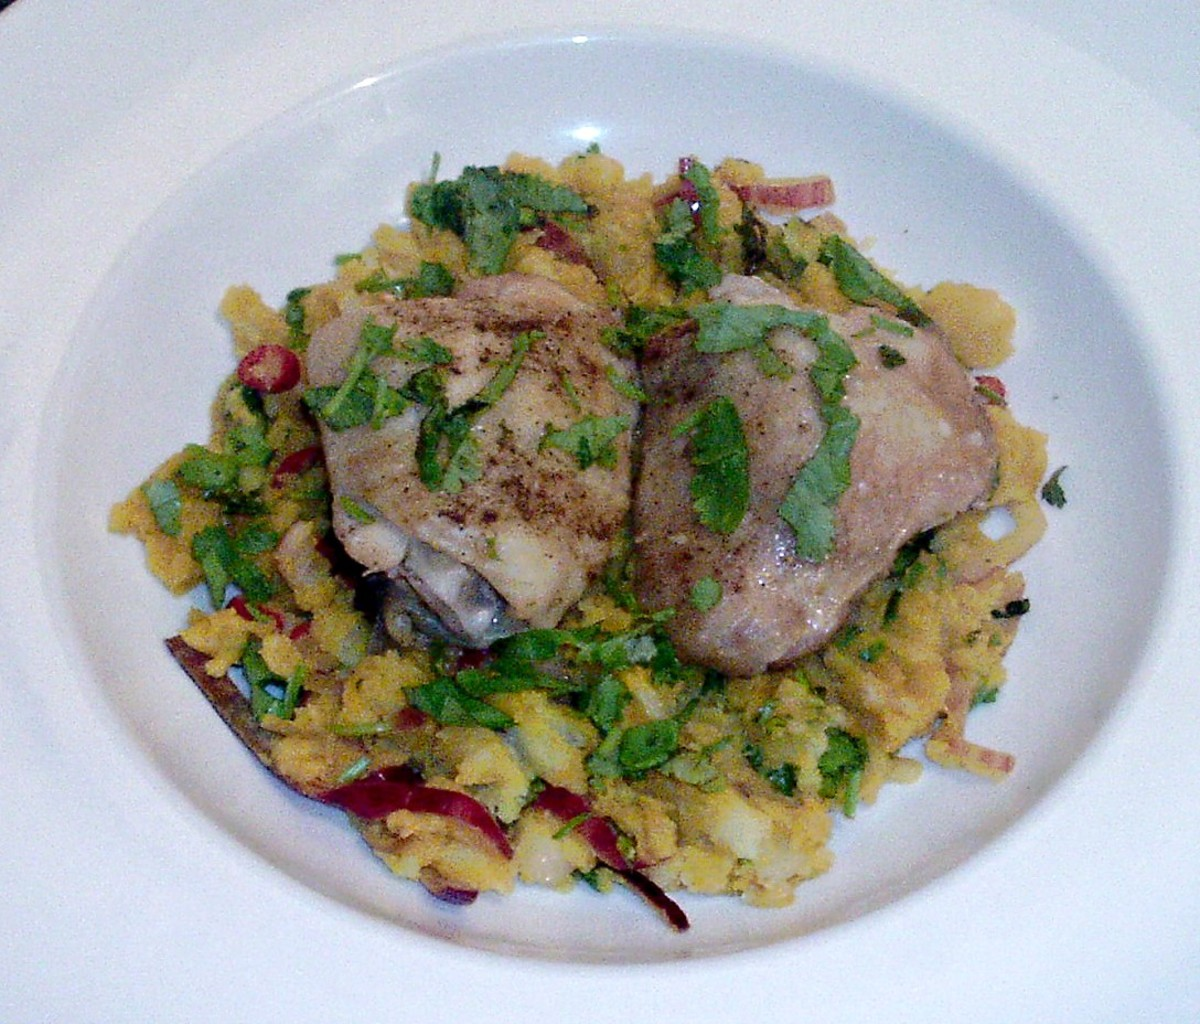 Baked chicken thighs are laid on a bed of curried leftover mash with red onion and chilli